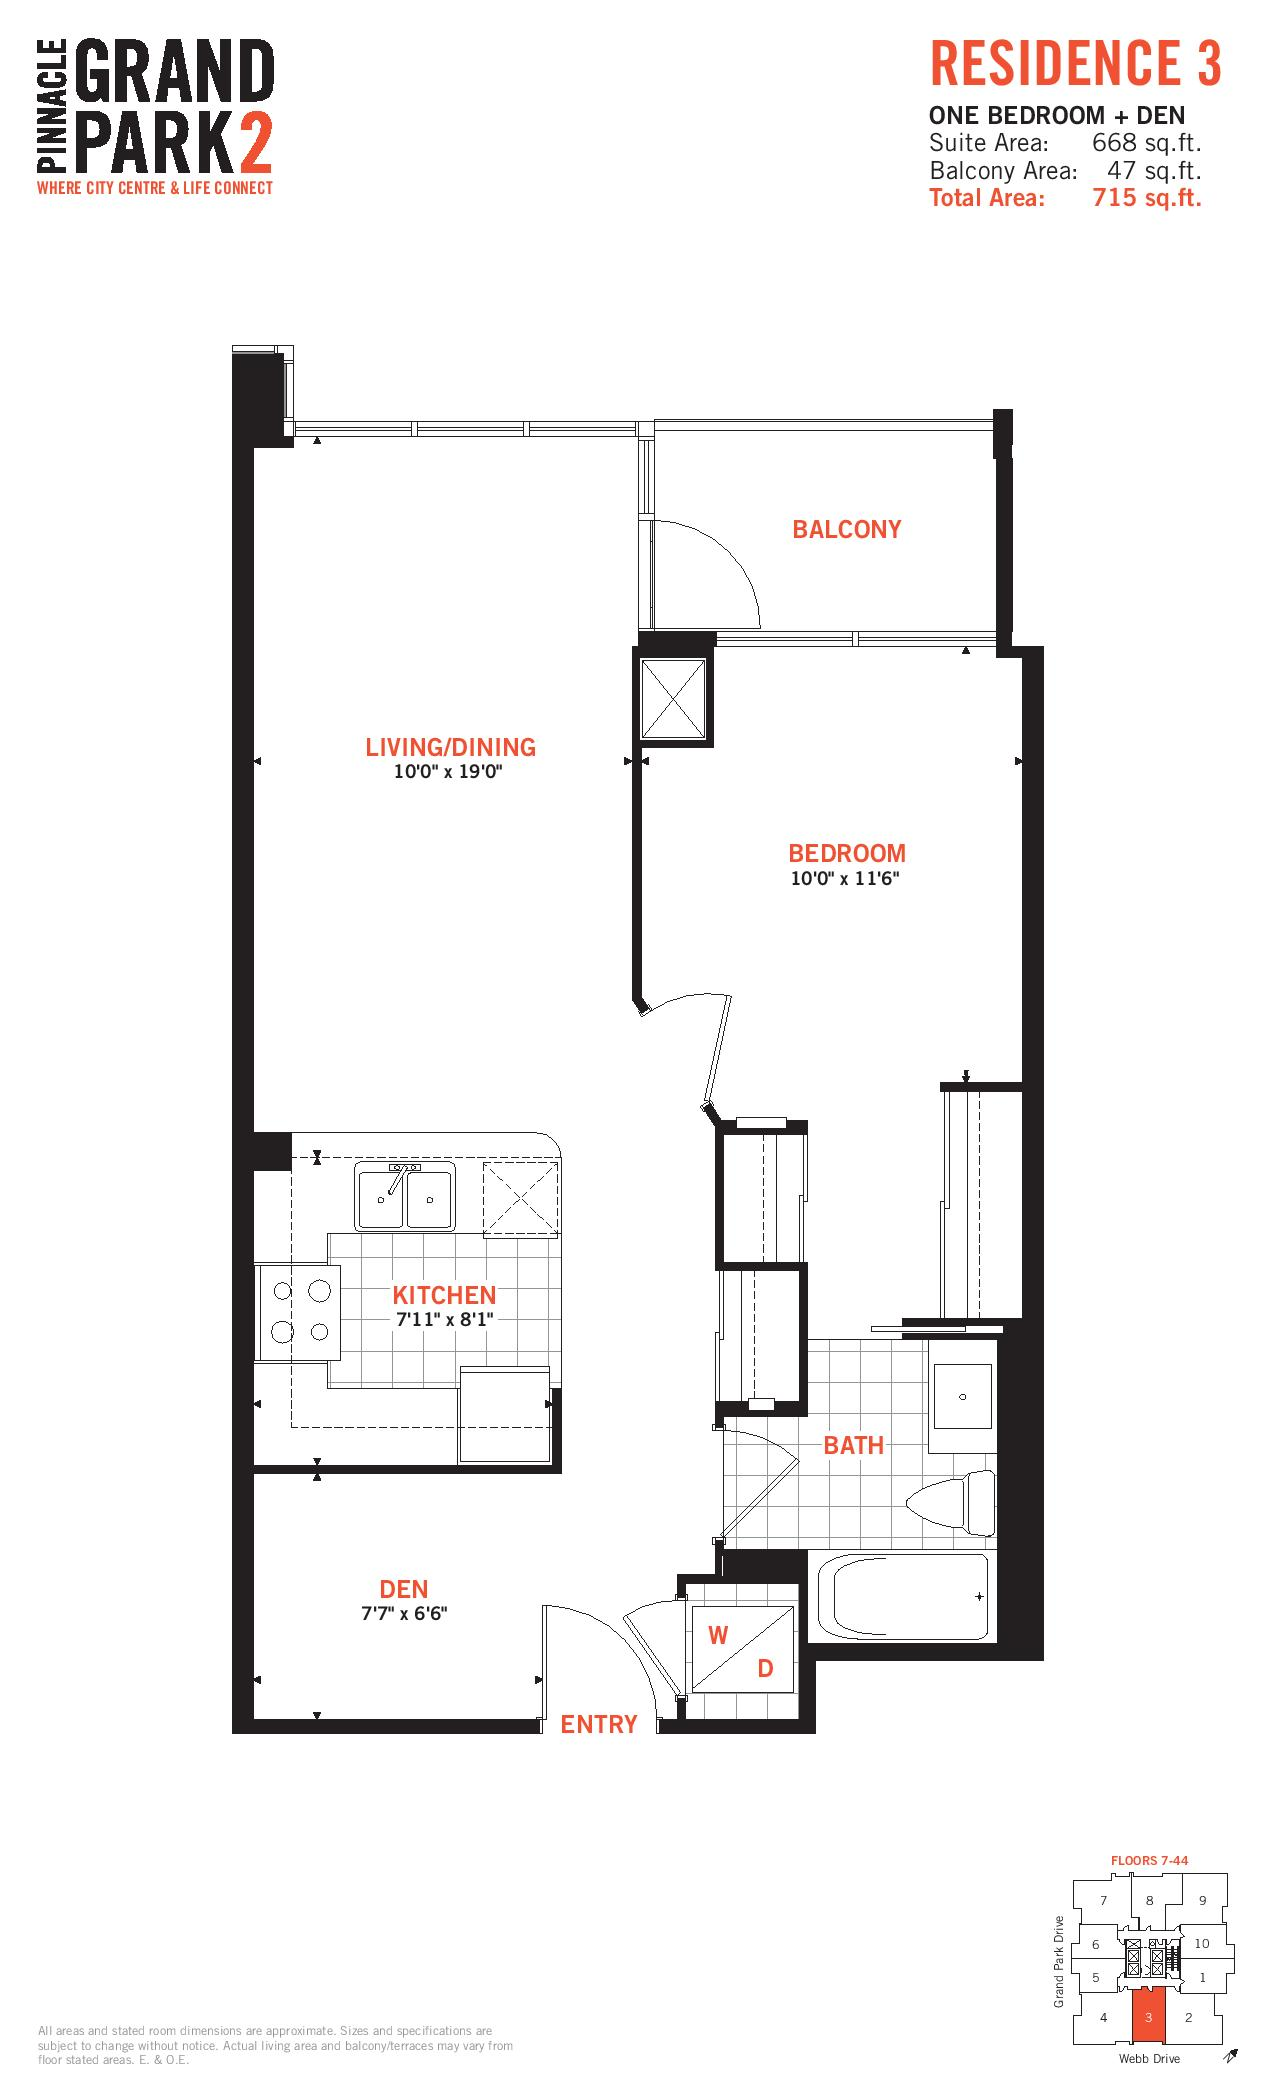 4 Bed House 300907 as well Pinnacle Grand Park 2 Condos likewise 3 Bed House 302297 also Products besides Pinnacle Grand Park 2 Condos. on check smoke detectors